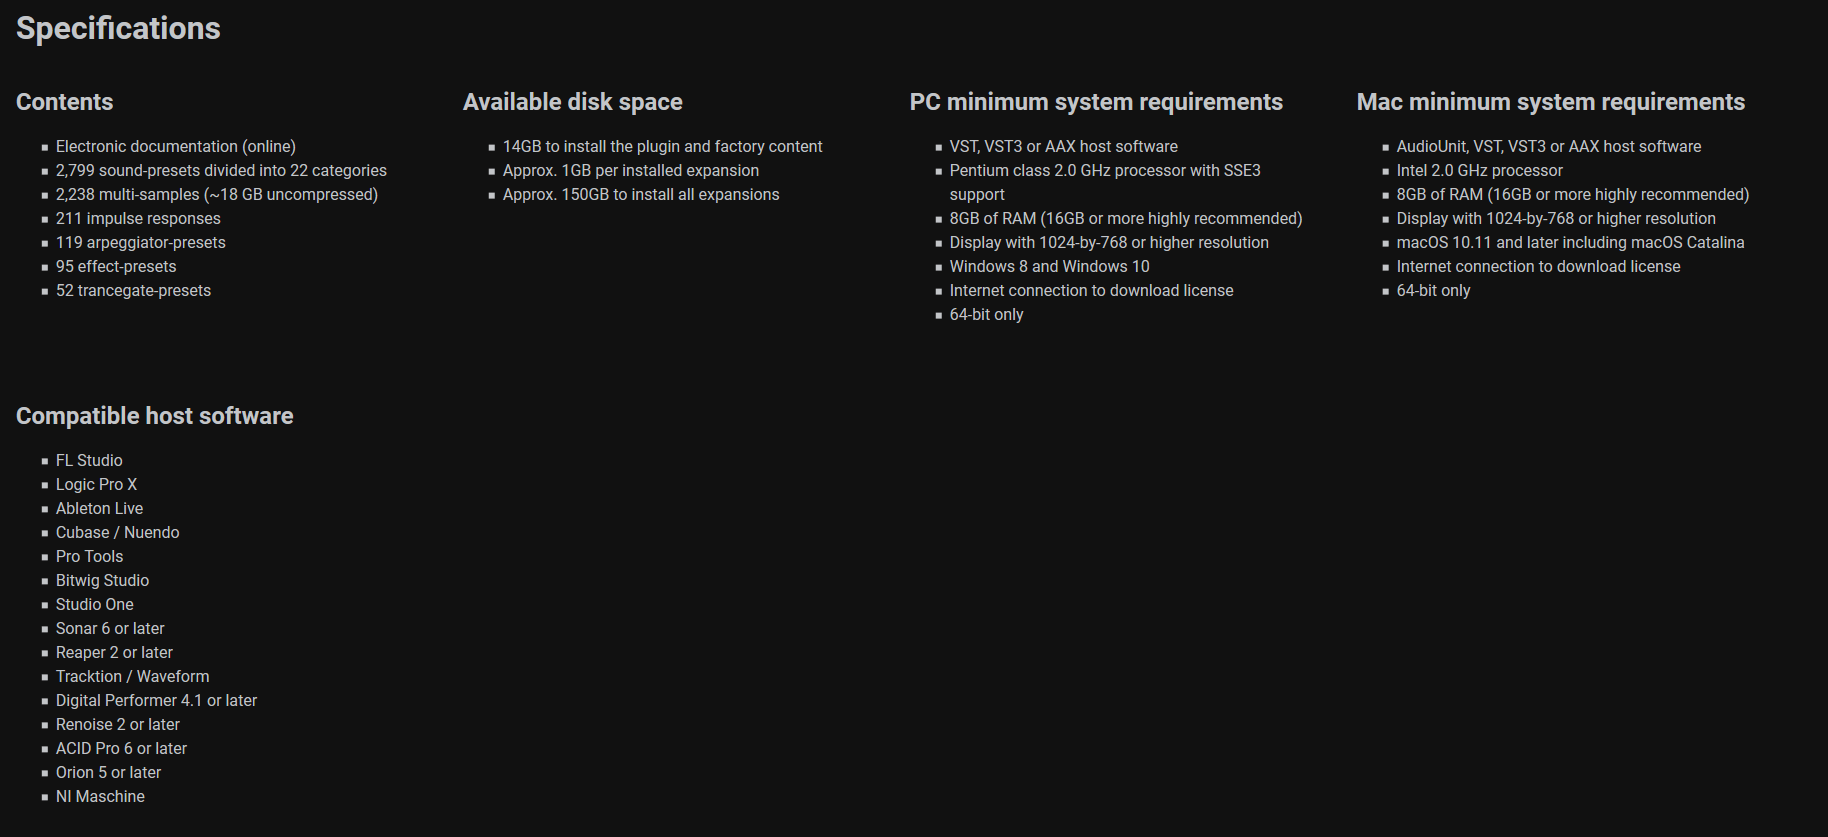 Nexus 3 Specifications and Requirements